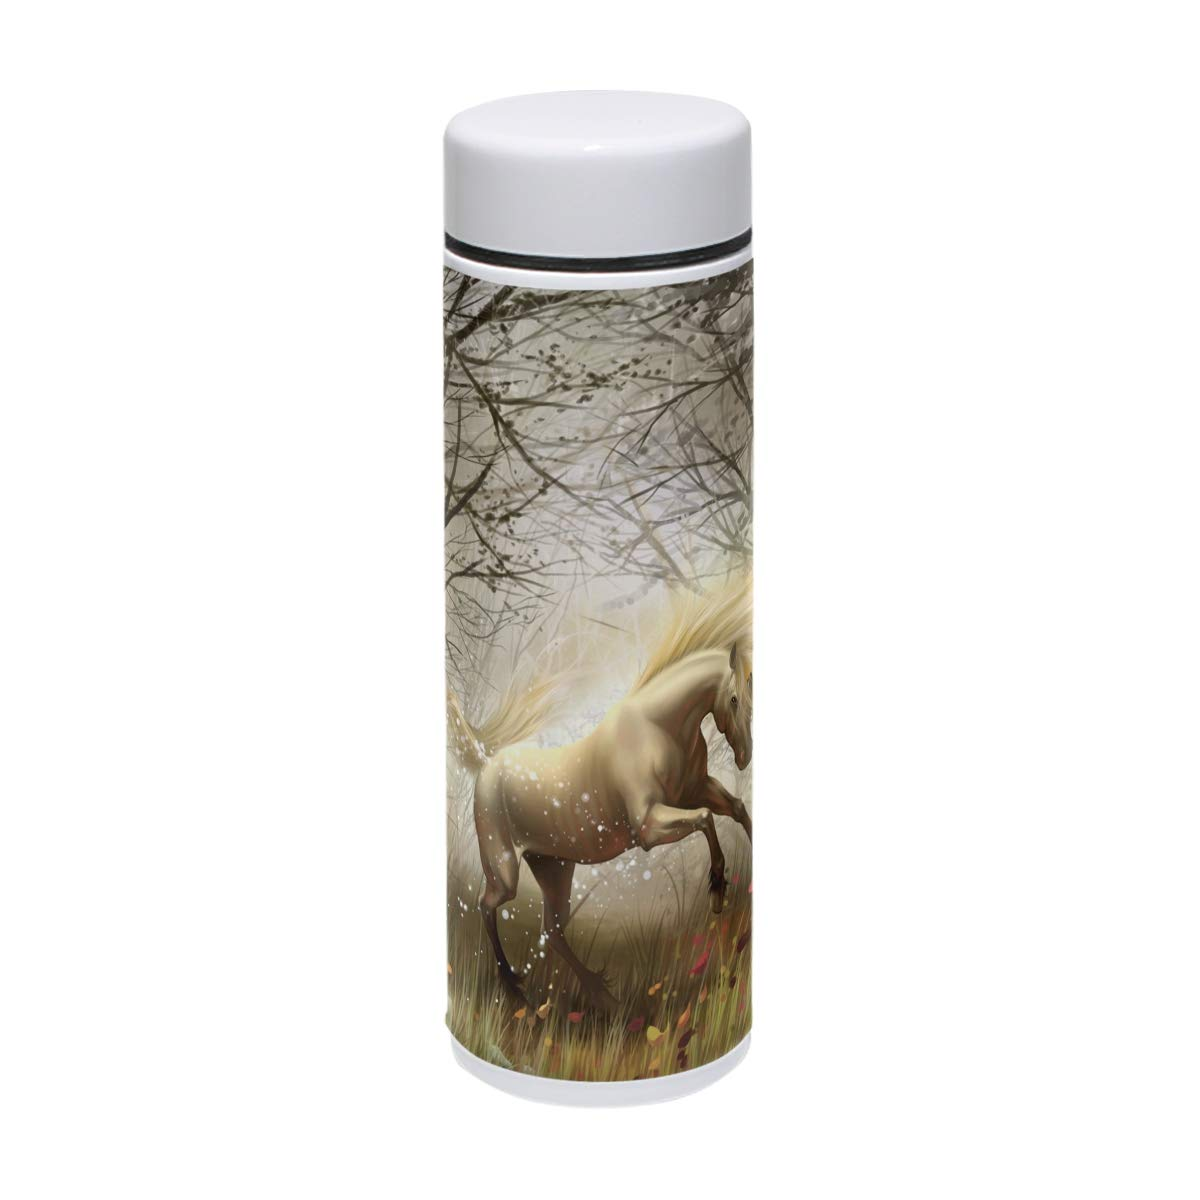 DEYYA Horse Wood Magic Wind Transformation Stainless Steel Vacuum Insulated Double Walled Thermos Water Bottle Keeps Your Drink Hot & Cold | 7.5 Oz (220 ml)